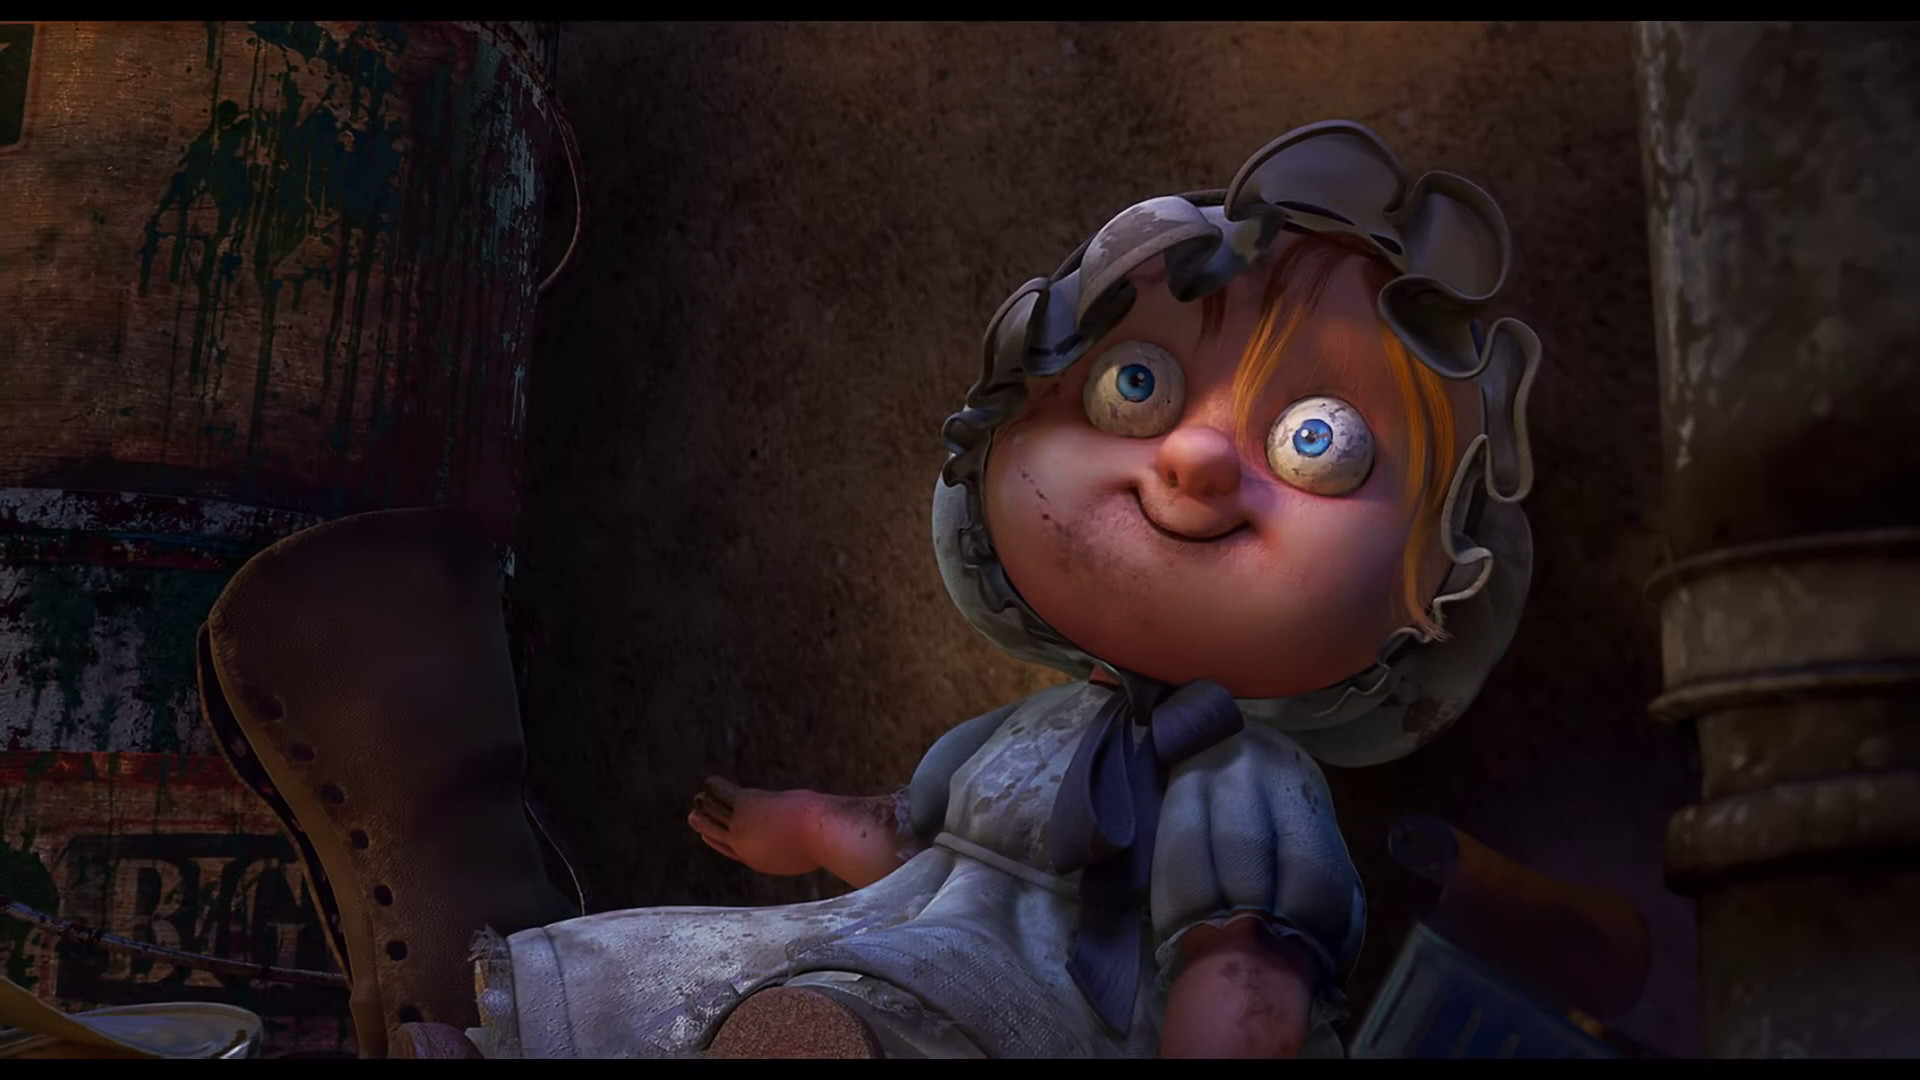 Nut Job 2 - Surfacing for Creepy Doll and Background Alley